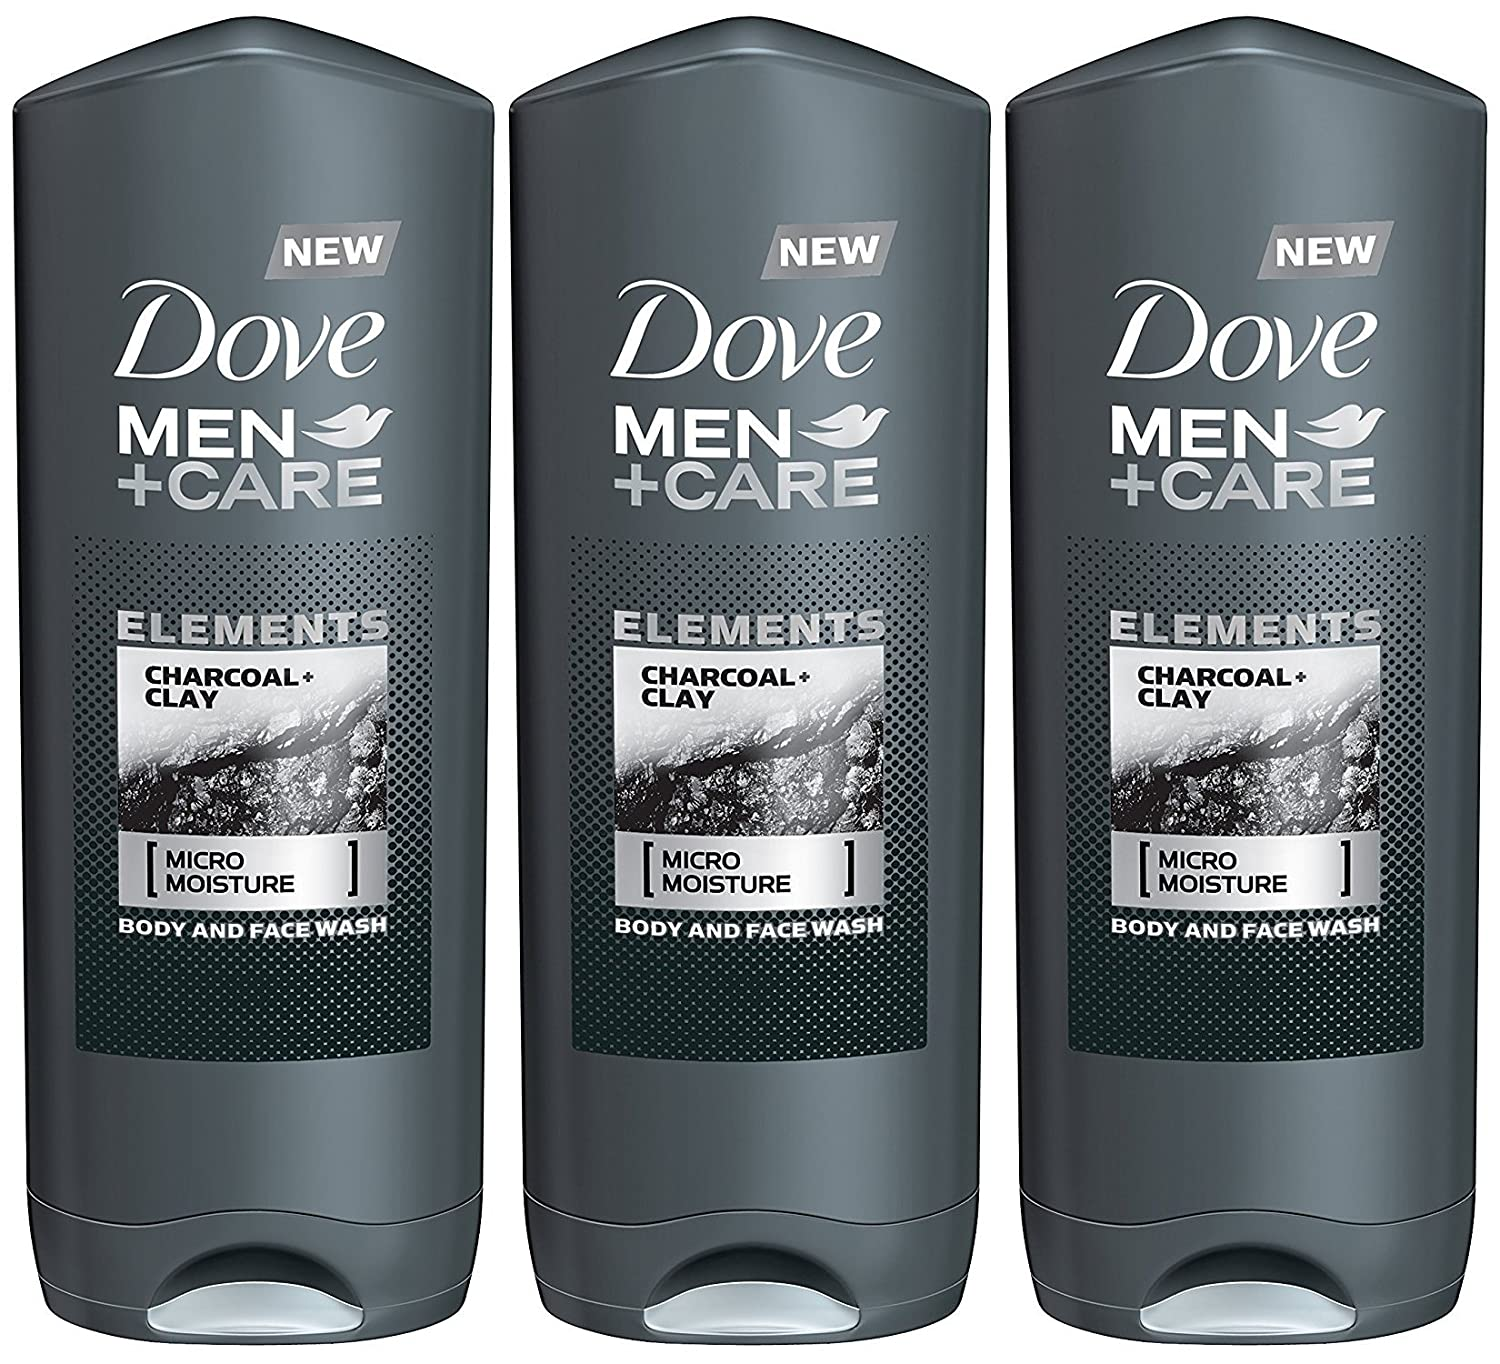 Dove Men + Care Elements Body Wash, Minerals and Sage, 13.5 Ounce(Pack of 3) 13.5 Ounce(Pack of 3)